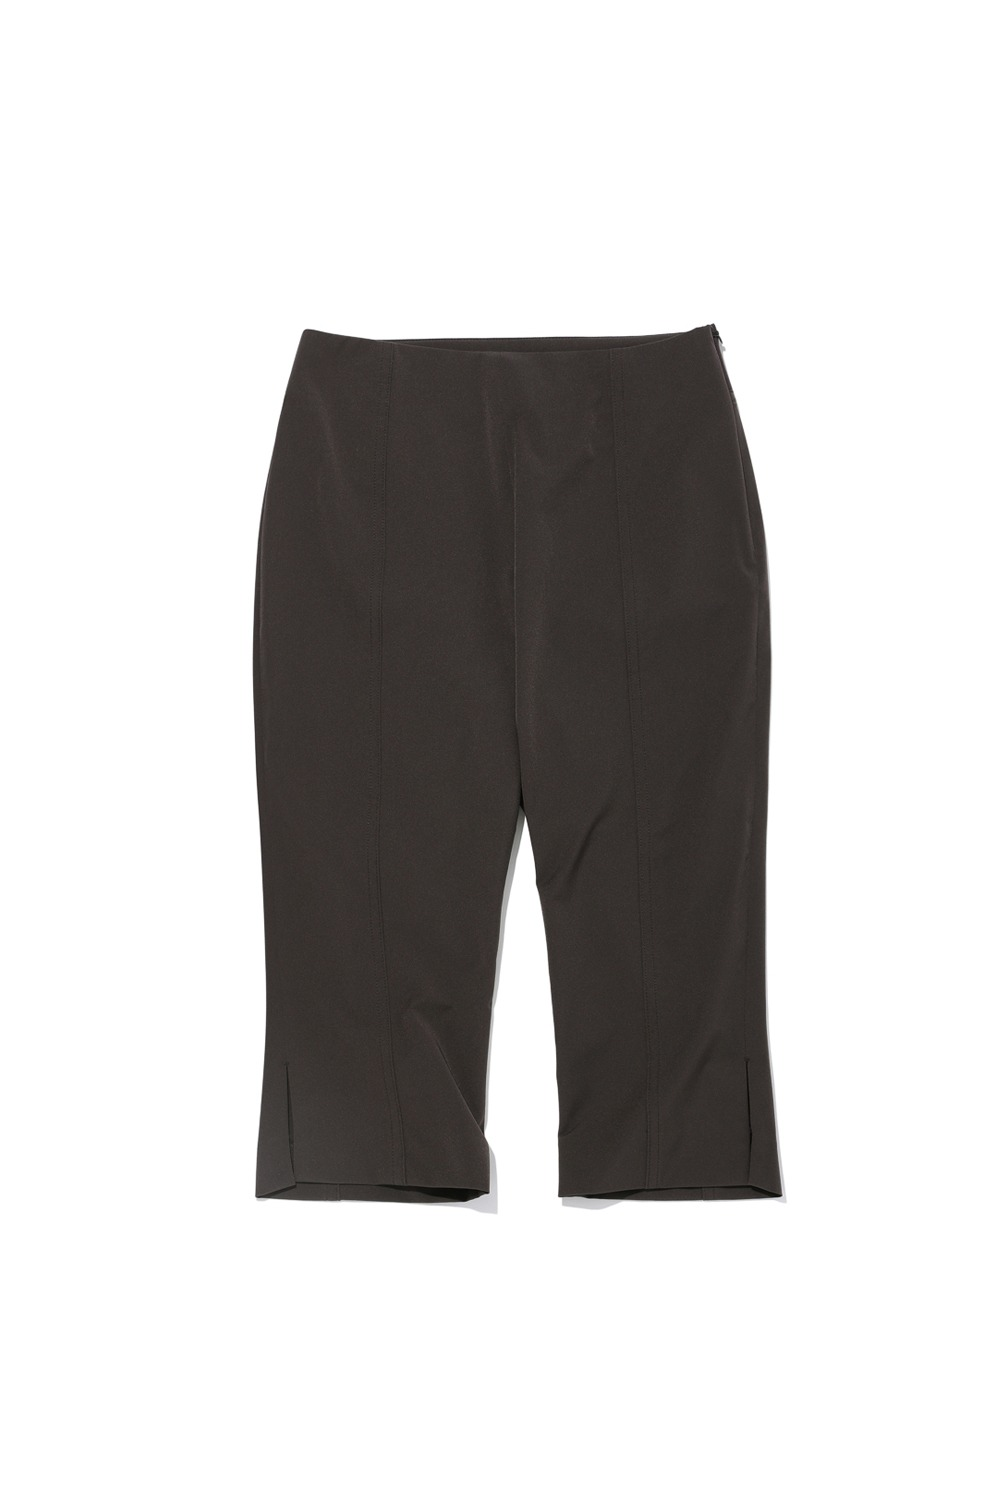 2021 CALL OUT_HIGH-RISE TAILORED BIKE SHORTS_CHARCOAL